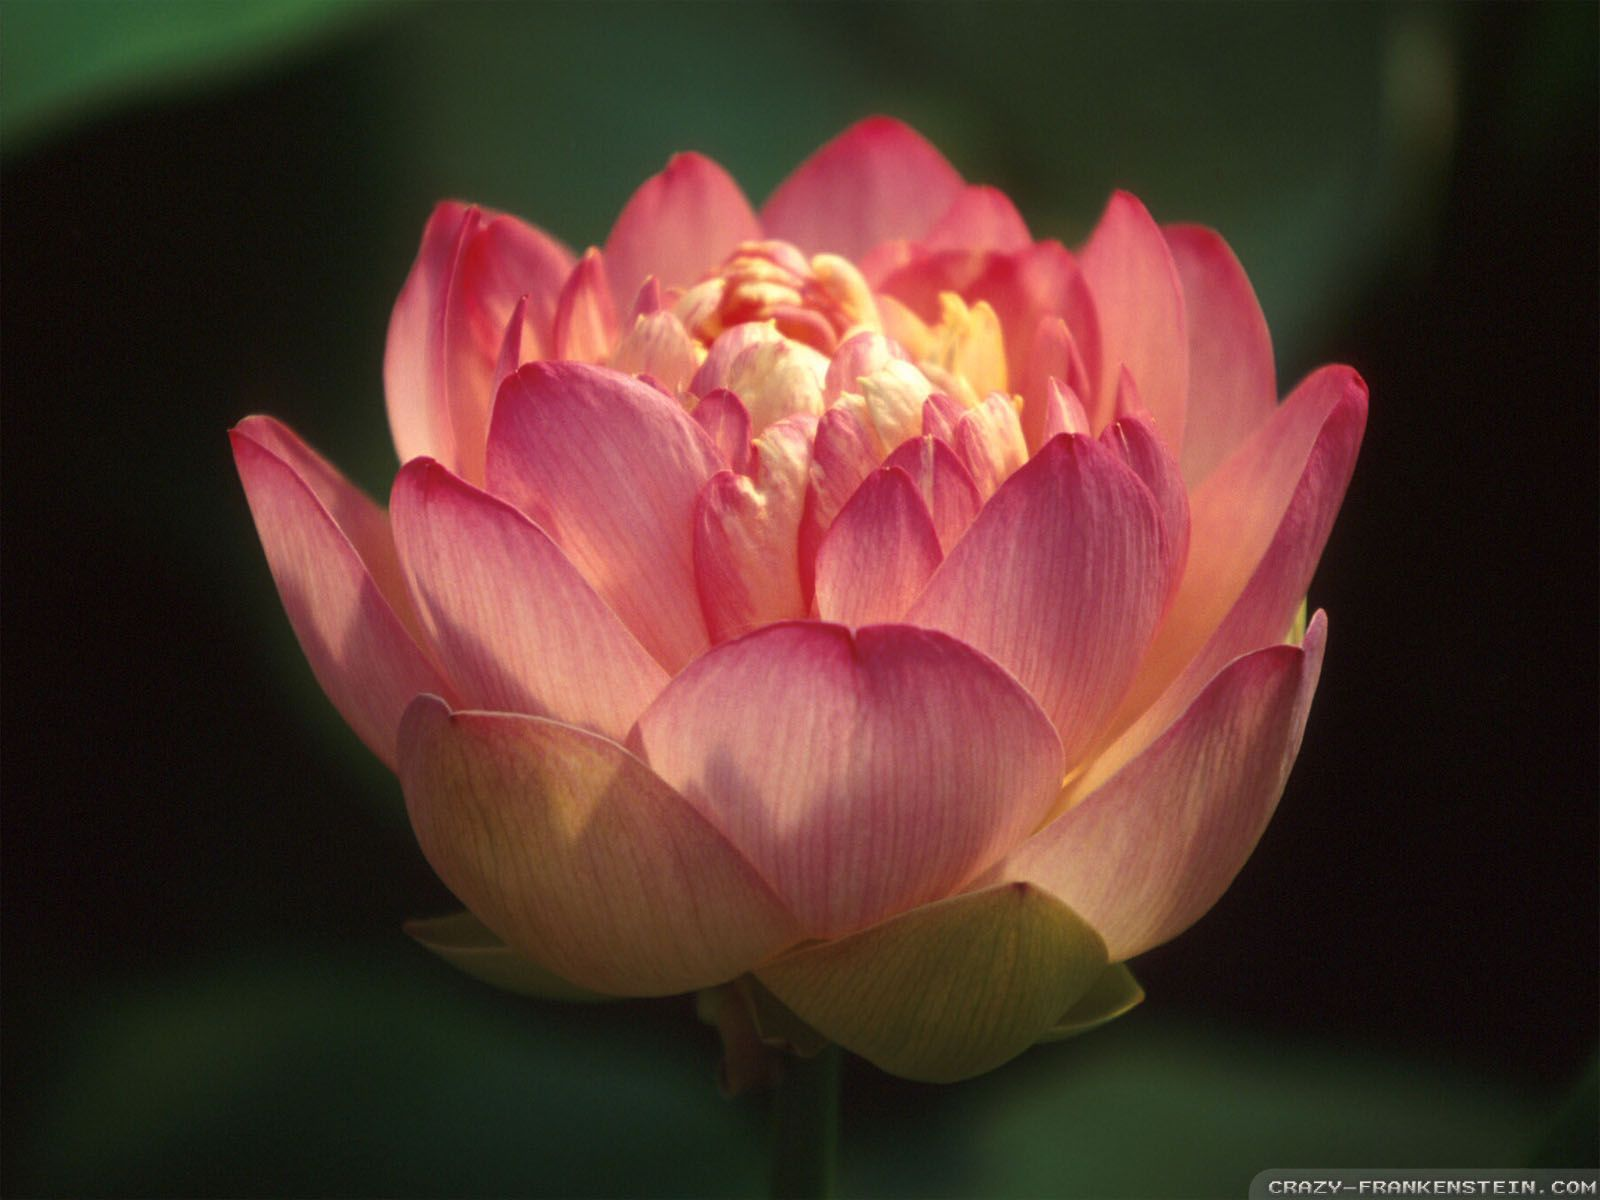 Red Lotus Flower wallpapers - Crazy Frankenstein